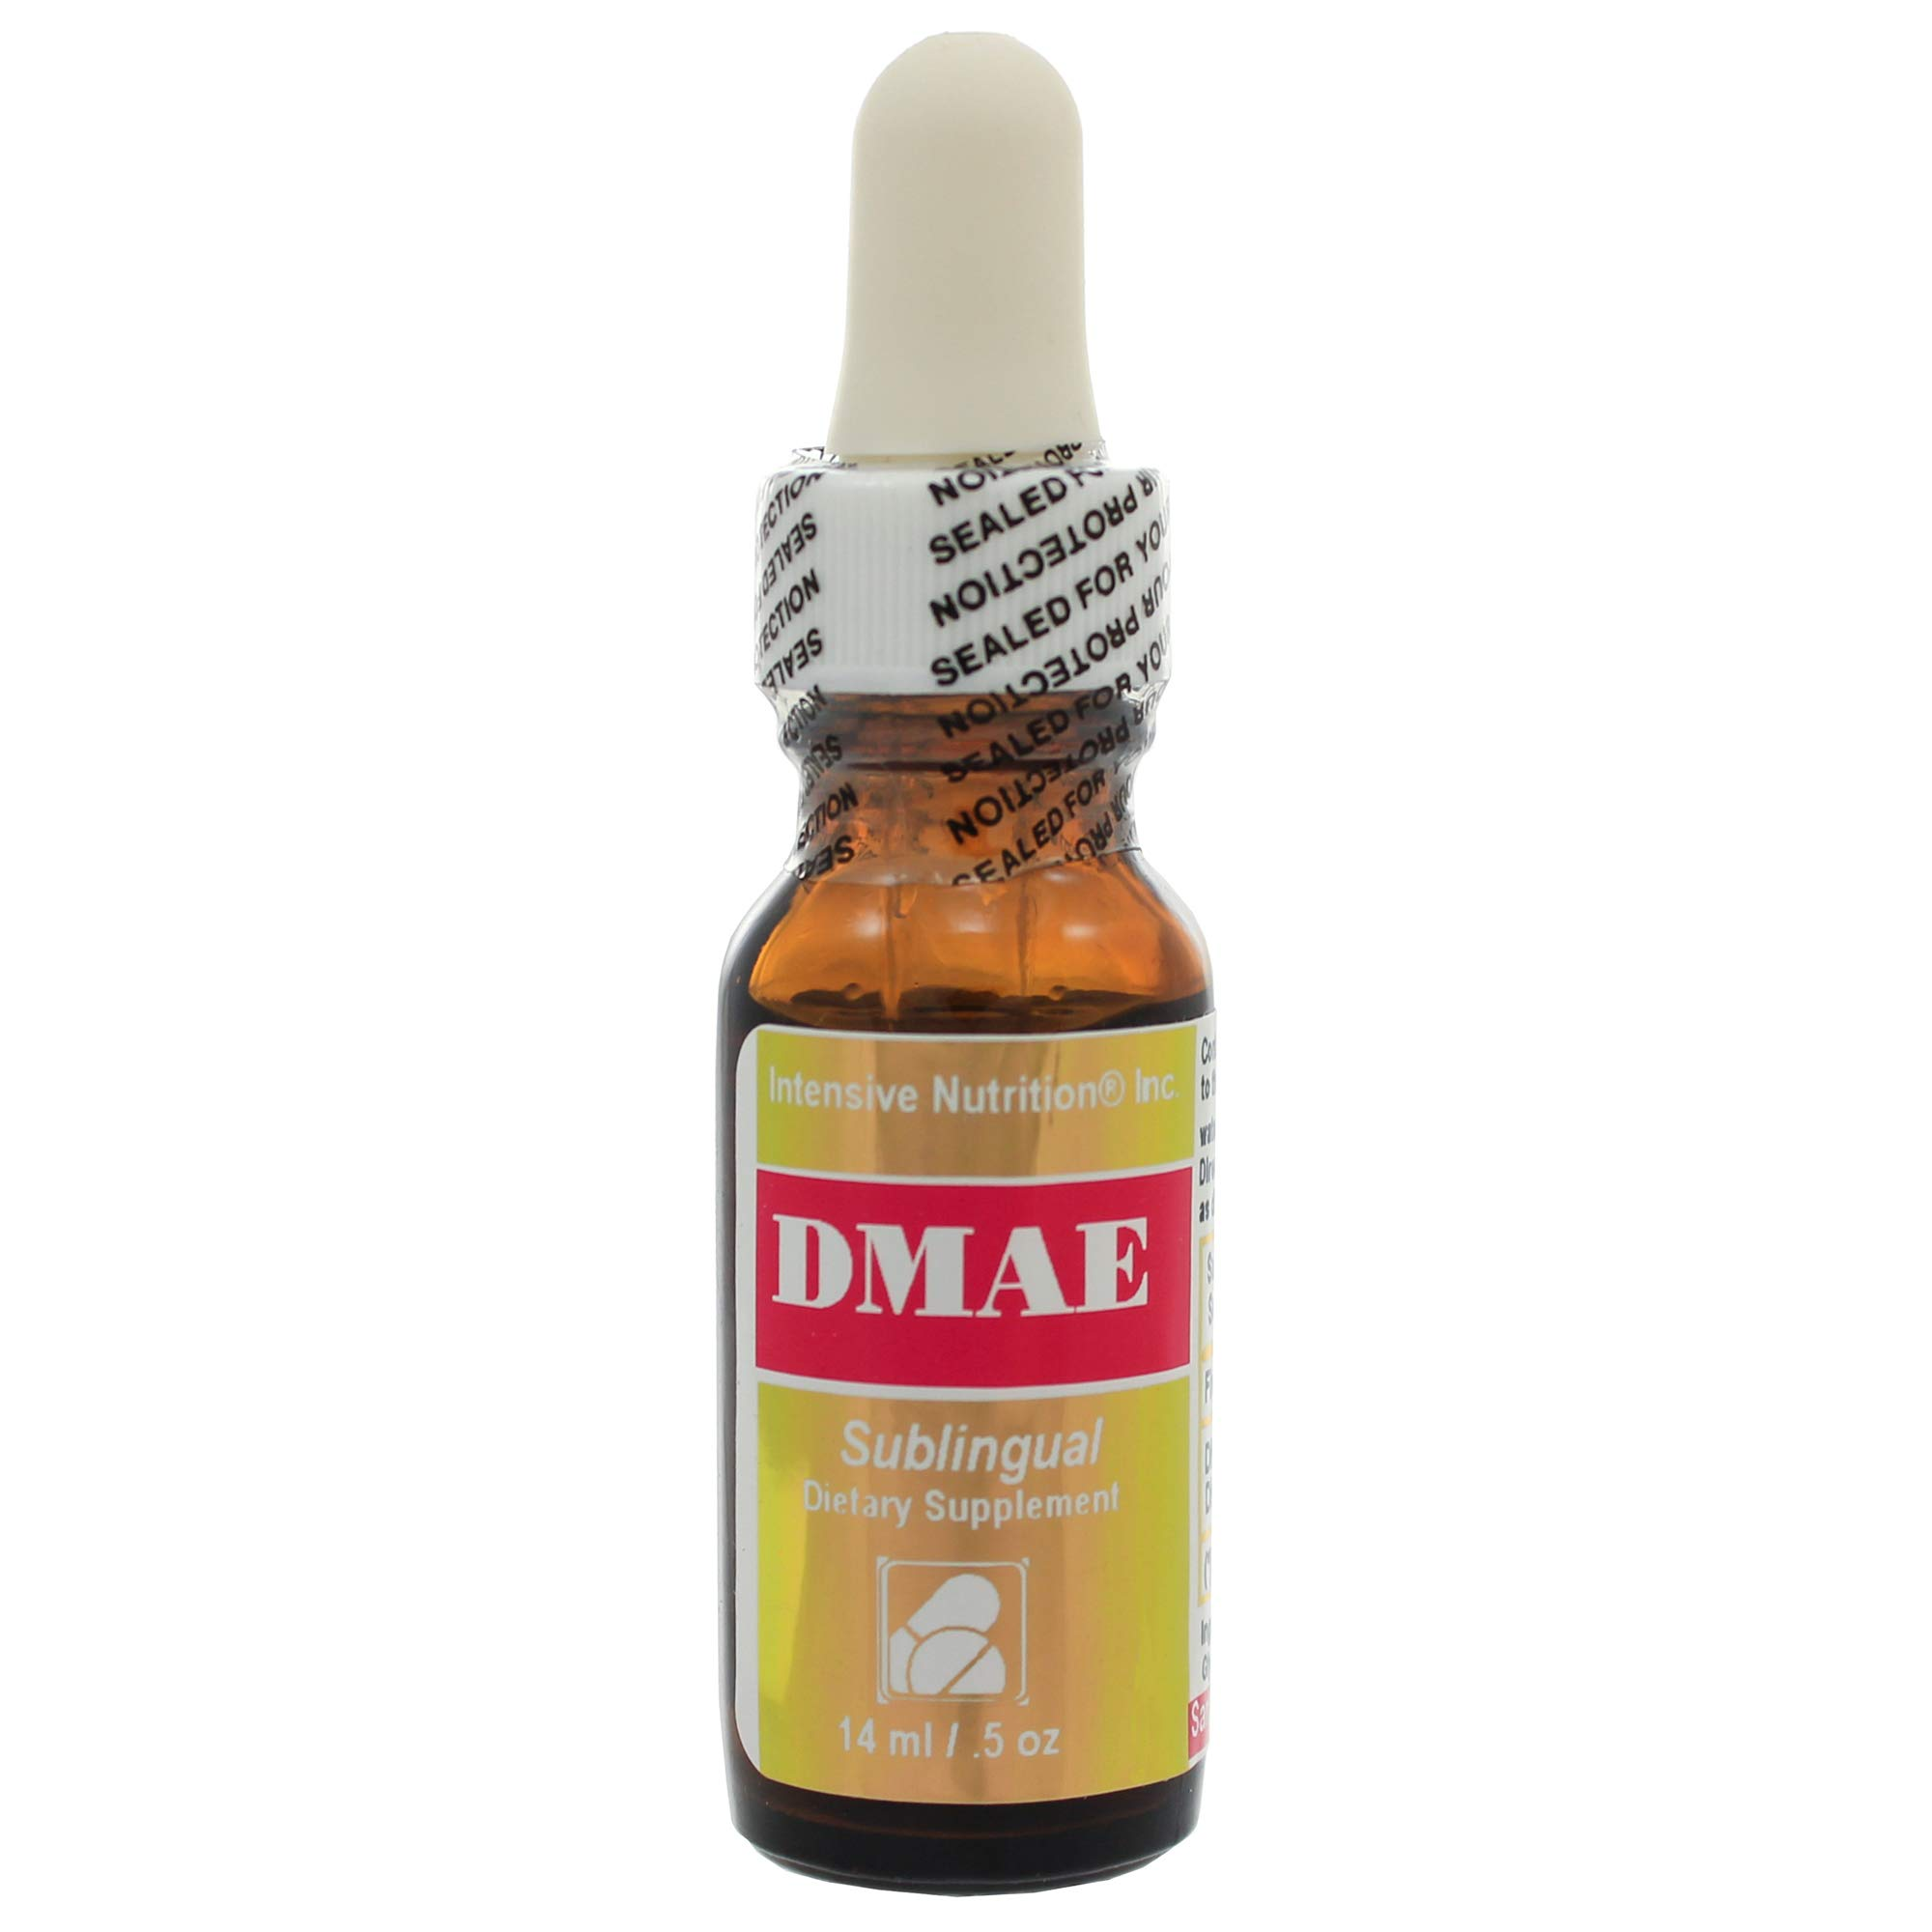 DMAE/DMSO 14 Milliliters - Pack of 3 by Intensive Nutrition/Scientific Consulting